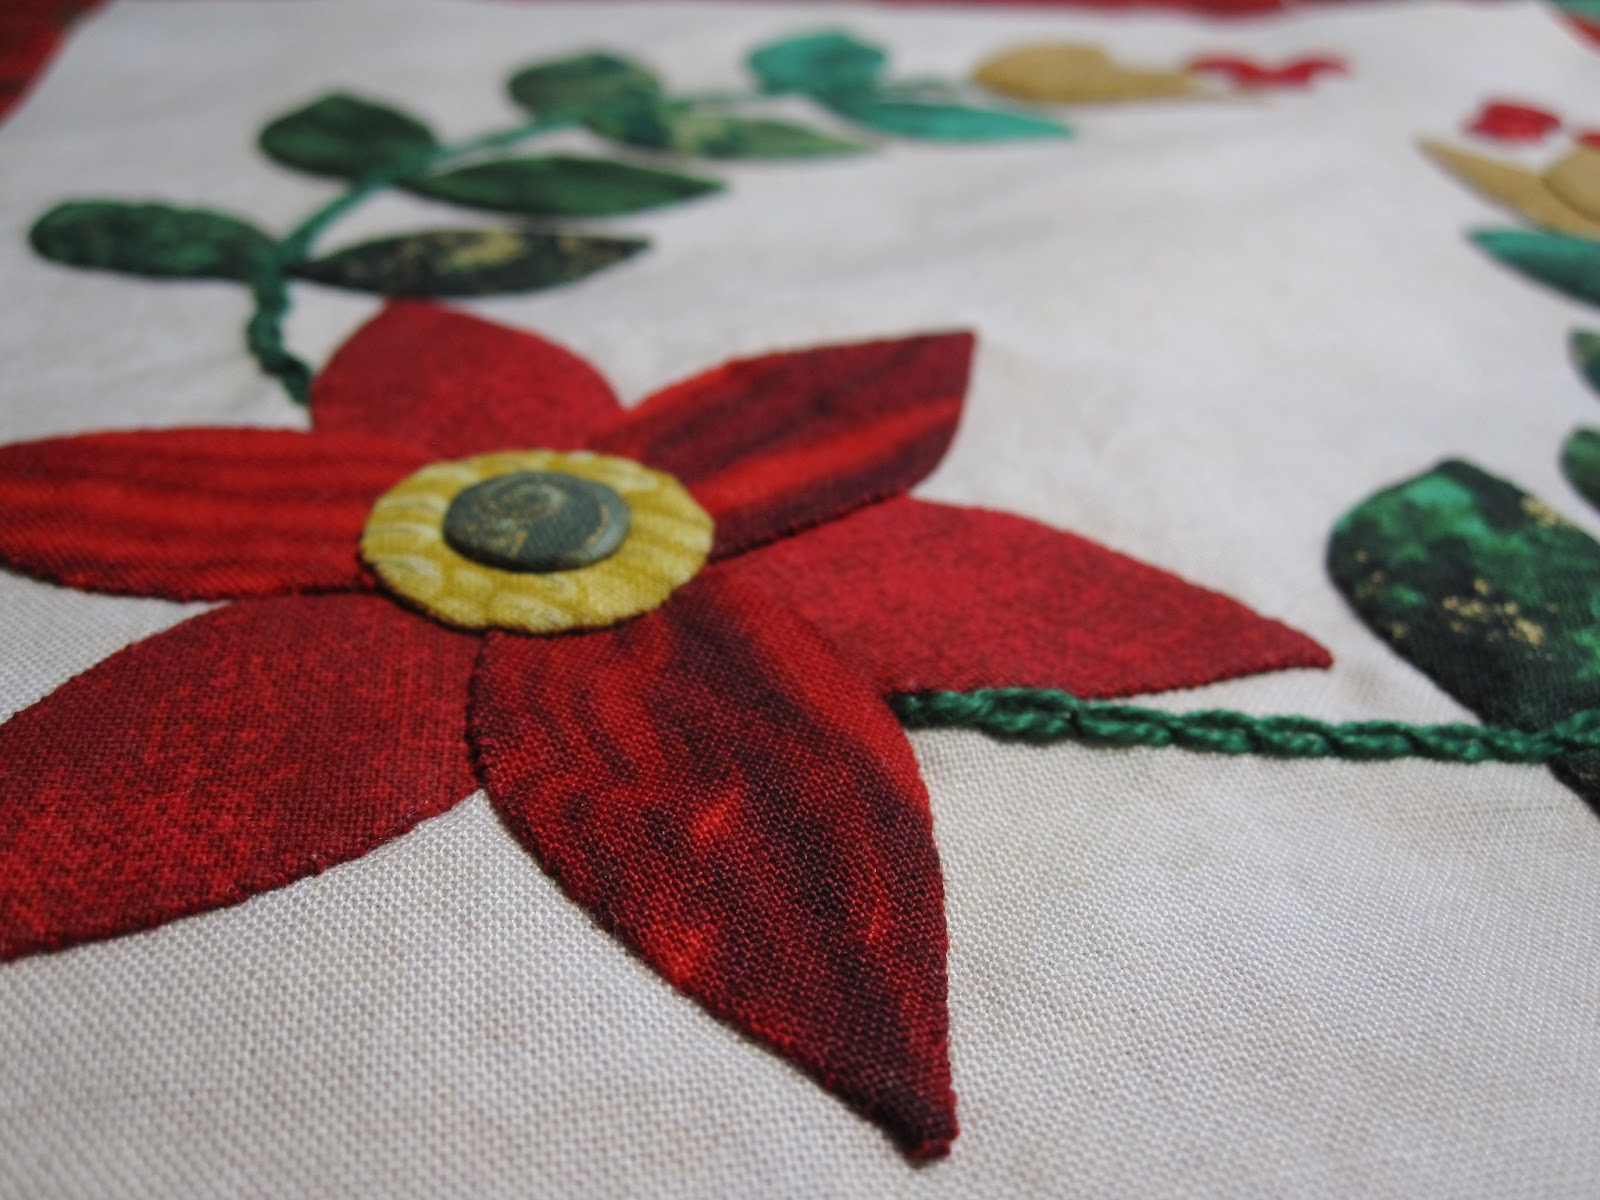 Cheeky cognoscenti applique by machine and by hand the verdict